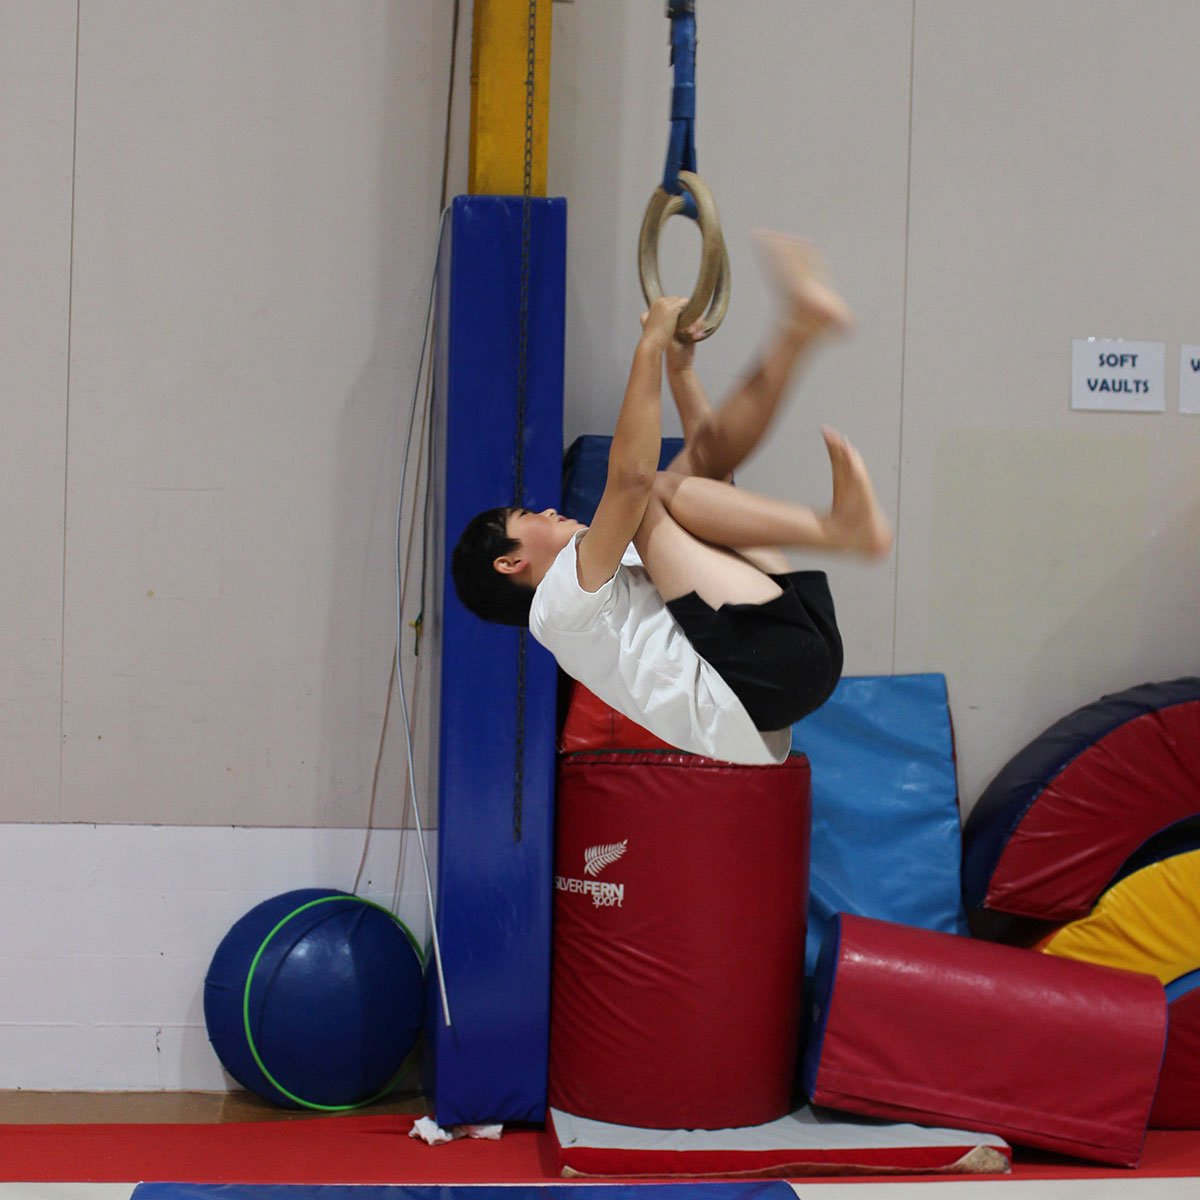 Boys Trial Day - MAG (Male Artistic Gymnastics)